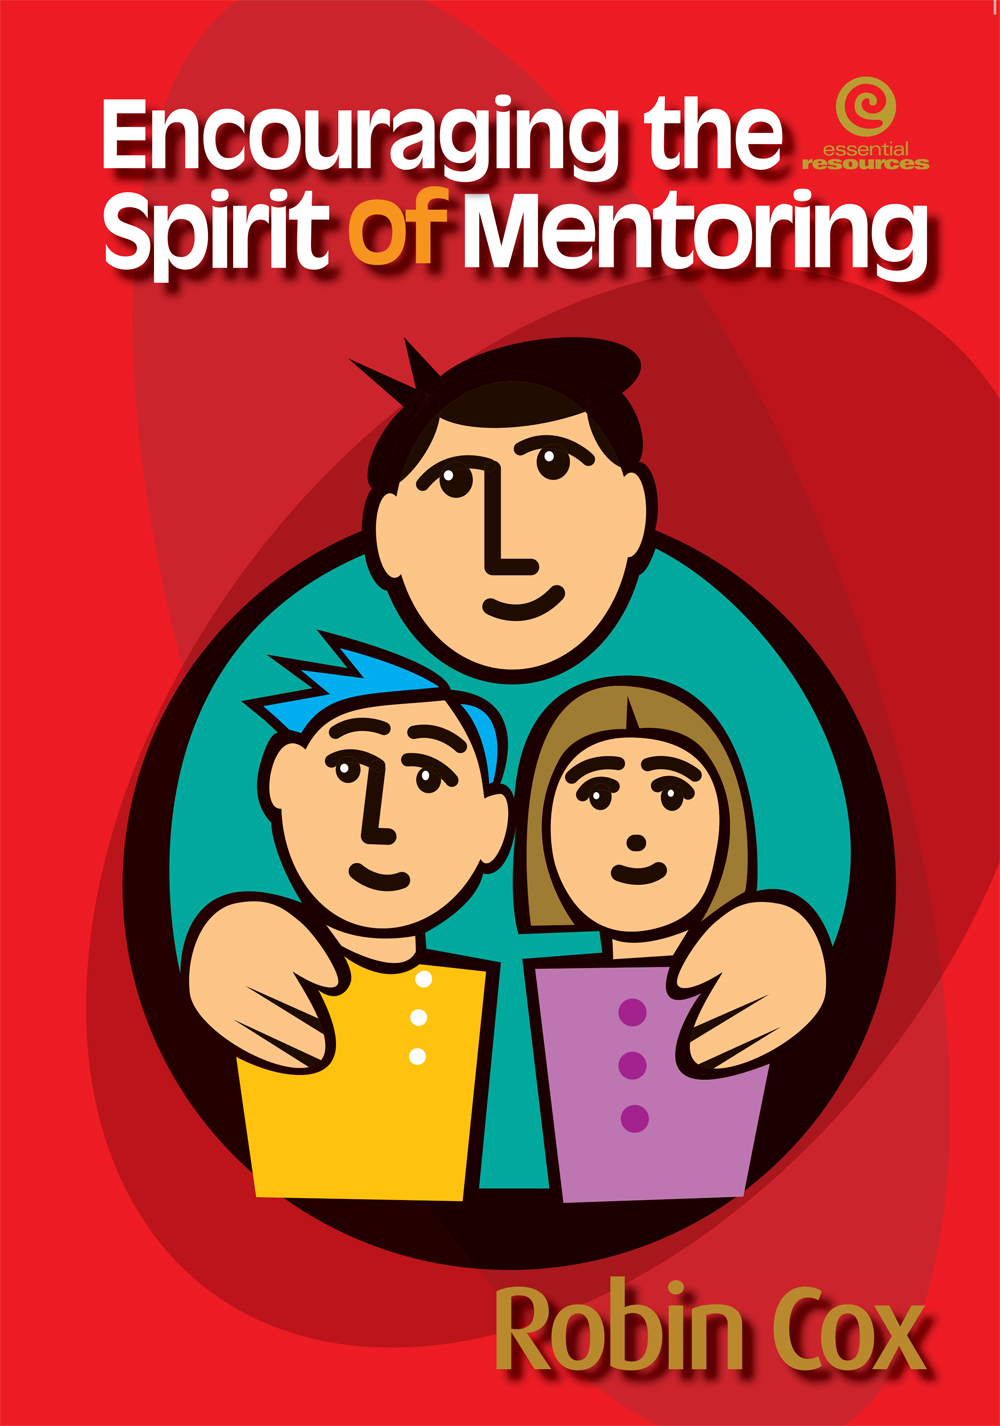 Encouraging the Spirit of Mentoring